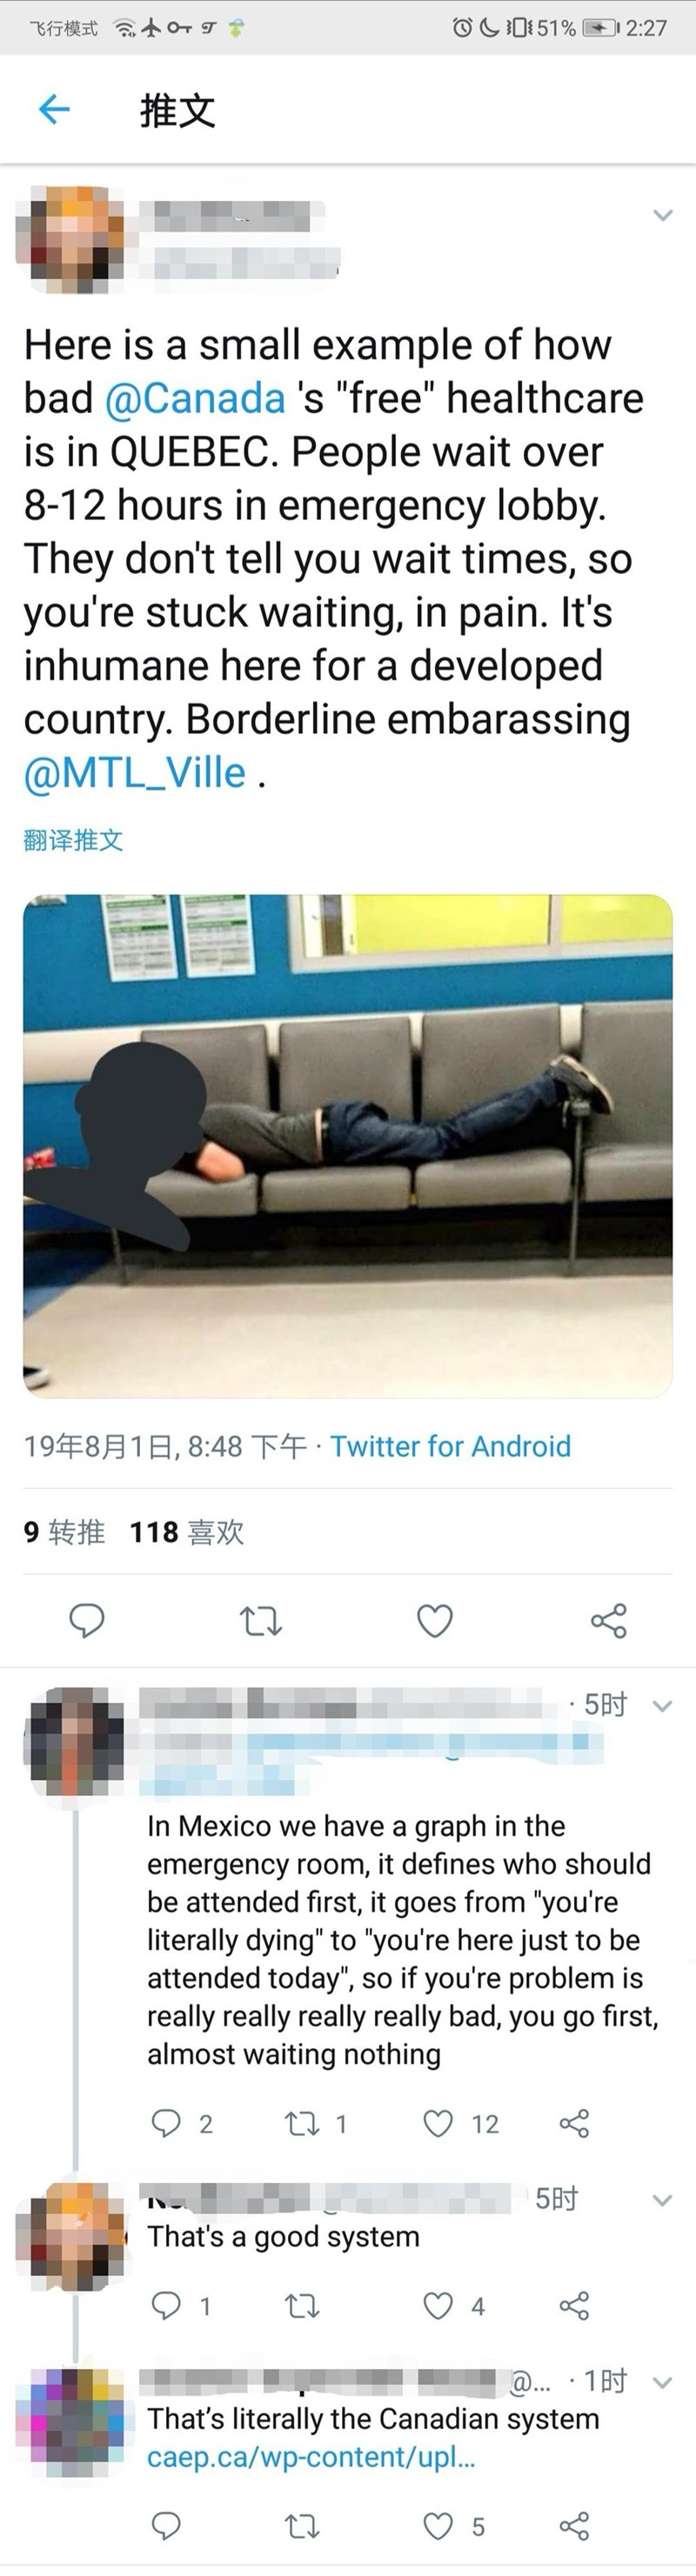 """called out - Product - 士99% 飞行模式 OC51% 2:27 推文 Here is a small example of how bad @Canada 's """"free"""" healthcare is in QUEBEC. People wait over 8-12 hours in emergency lobby. They don't tell you wait times, you're stuck waiting, in pain. It's inhumane here for a developed country. Borderline embarassing @MTL_Ville 翻译推文 19年8月1日,8:48 下午.Twitter for Android 9转推 118喜欢 5时 In Mexico we have a graph in the emergency room, it defines who should be attended first, it goes from """"you're literally dying"""" to """""""